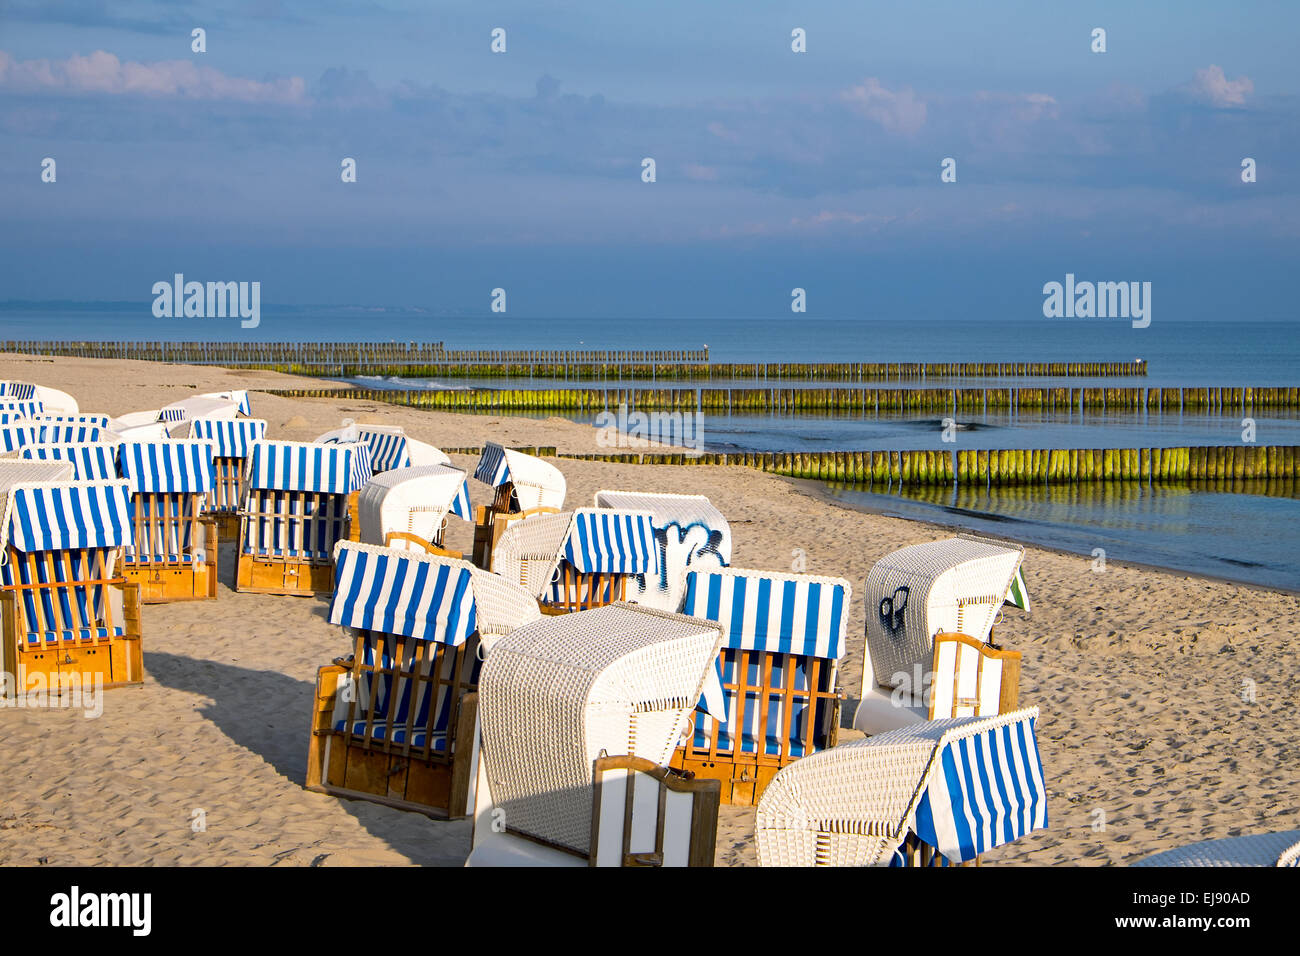 Beach chairs at the Baltic Sea - Stock Image